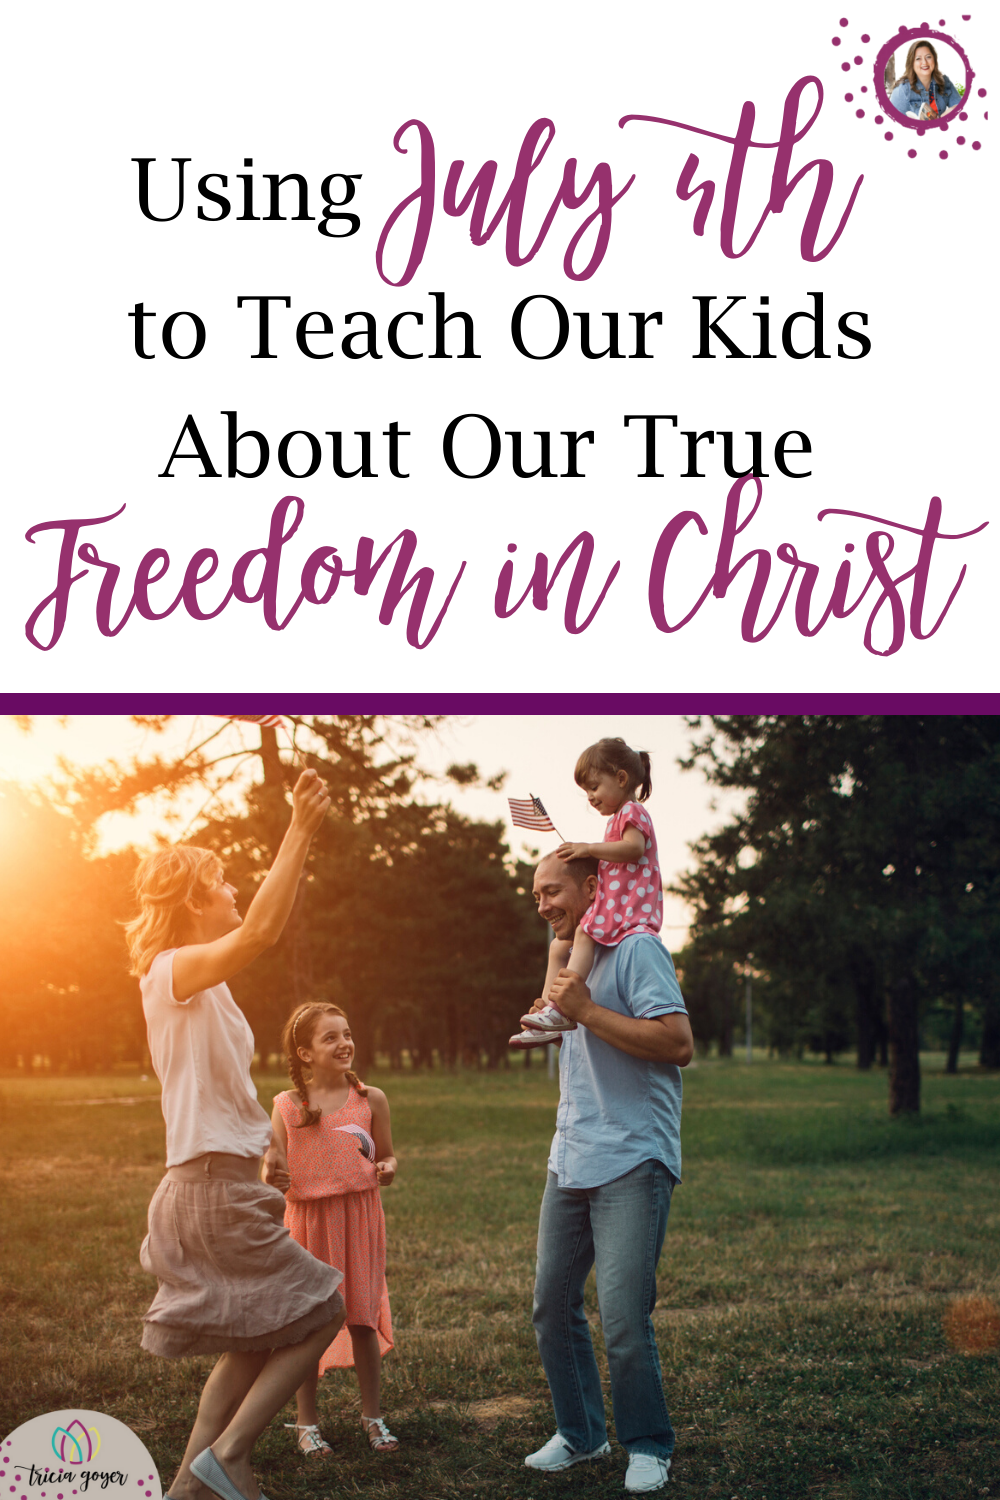 Using July 4th to Teach Our Kids About Our True Freedom in Christ